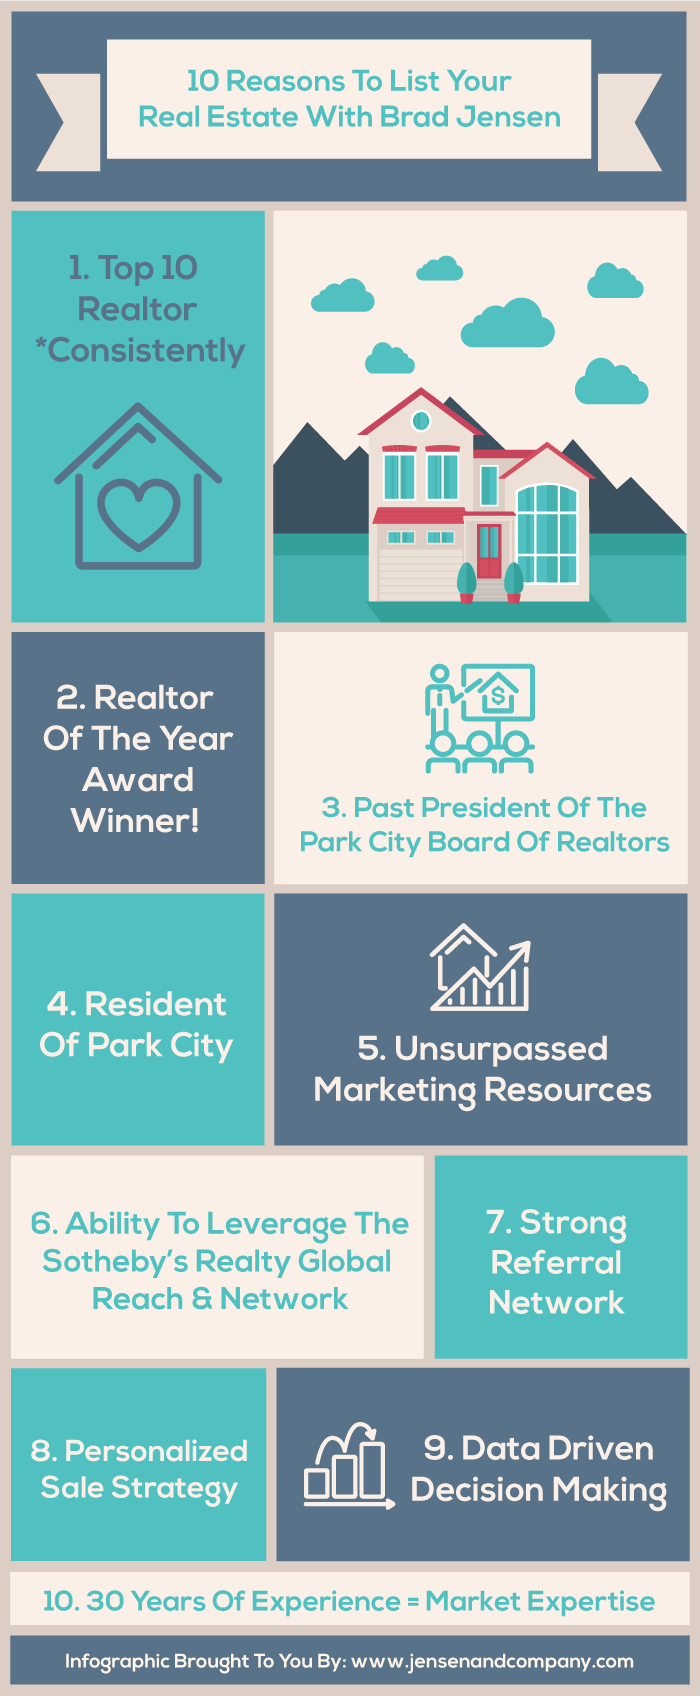 10-Reason-To-List-Your-Real-Estate-With-Brad-Jensen